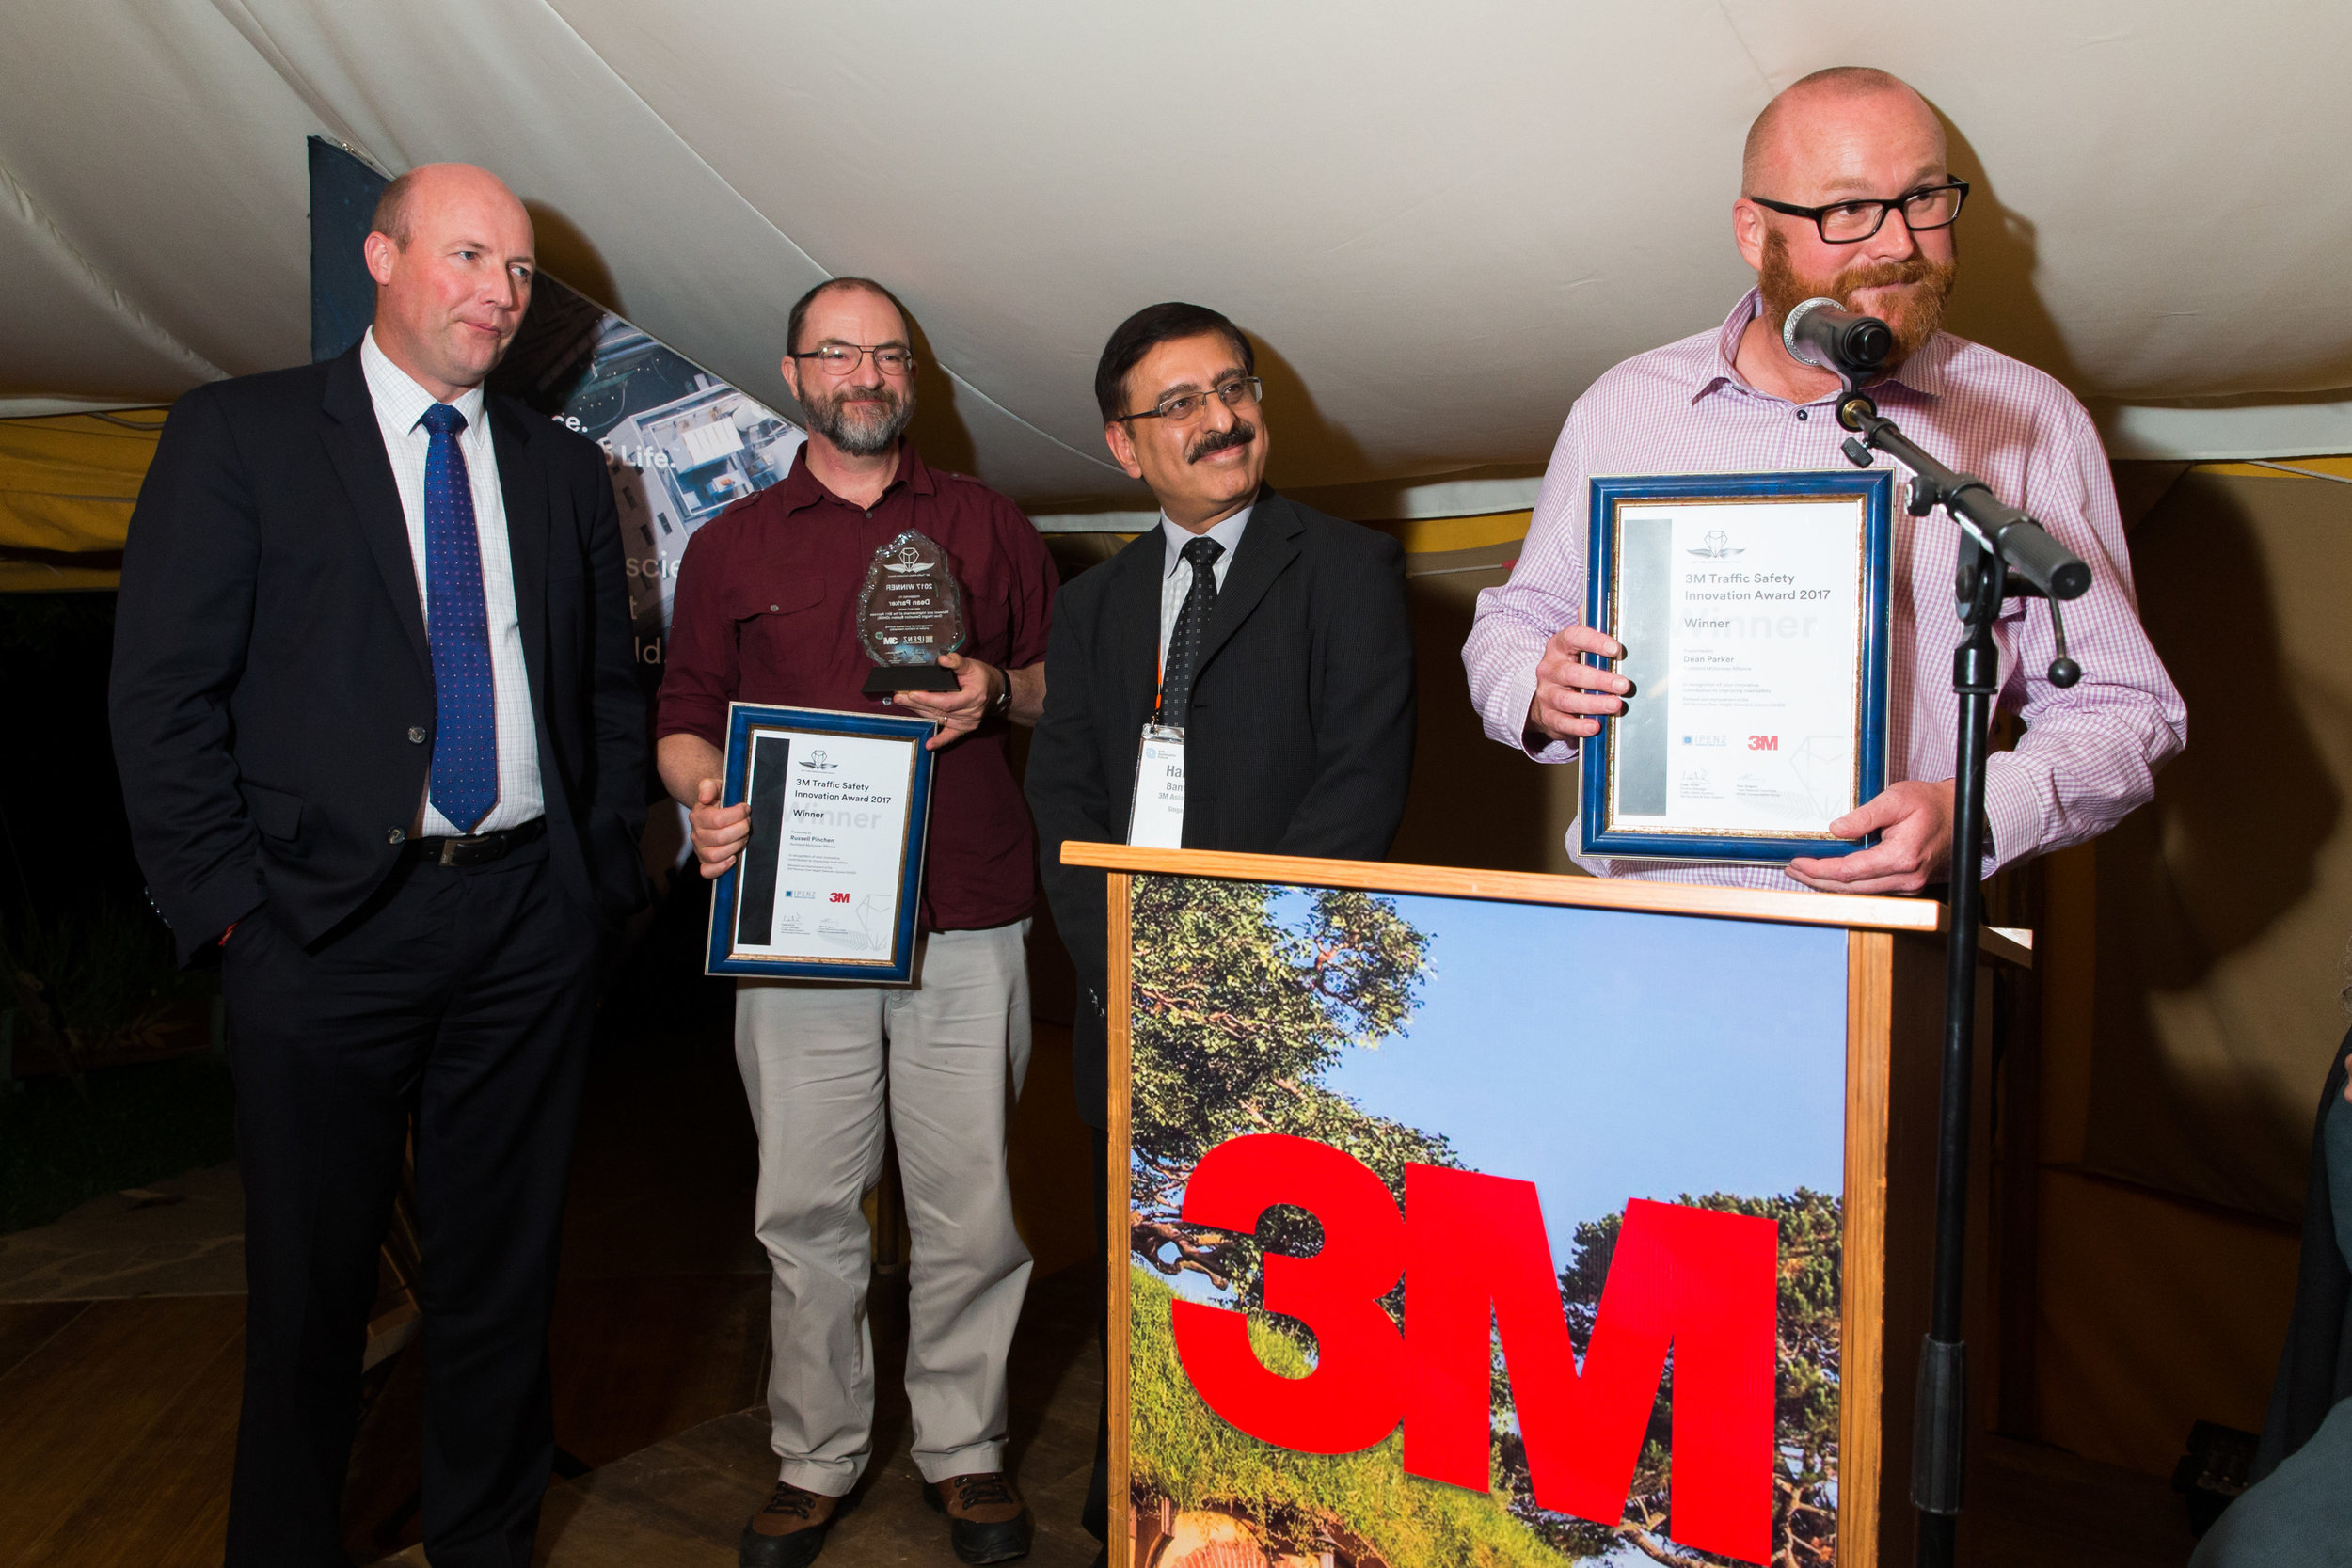 3M Award winner - Renewal and improvement of the SH1 Penrose Over Height Detection System (OHDS)Dean Parker, Peter Bathgate, Russell Pinchen, Joanne Chang, Laurence Butcher, Robert Shiret, Neil Fisher, Jean Paul Modderman - Auckland Motorway Alliance